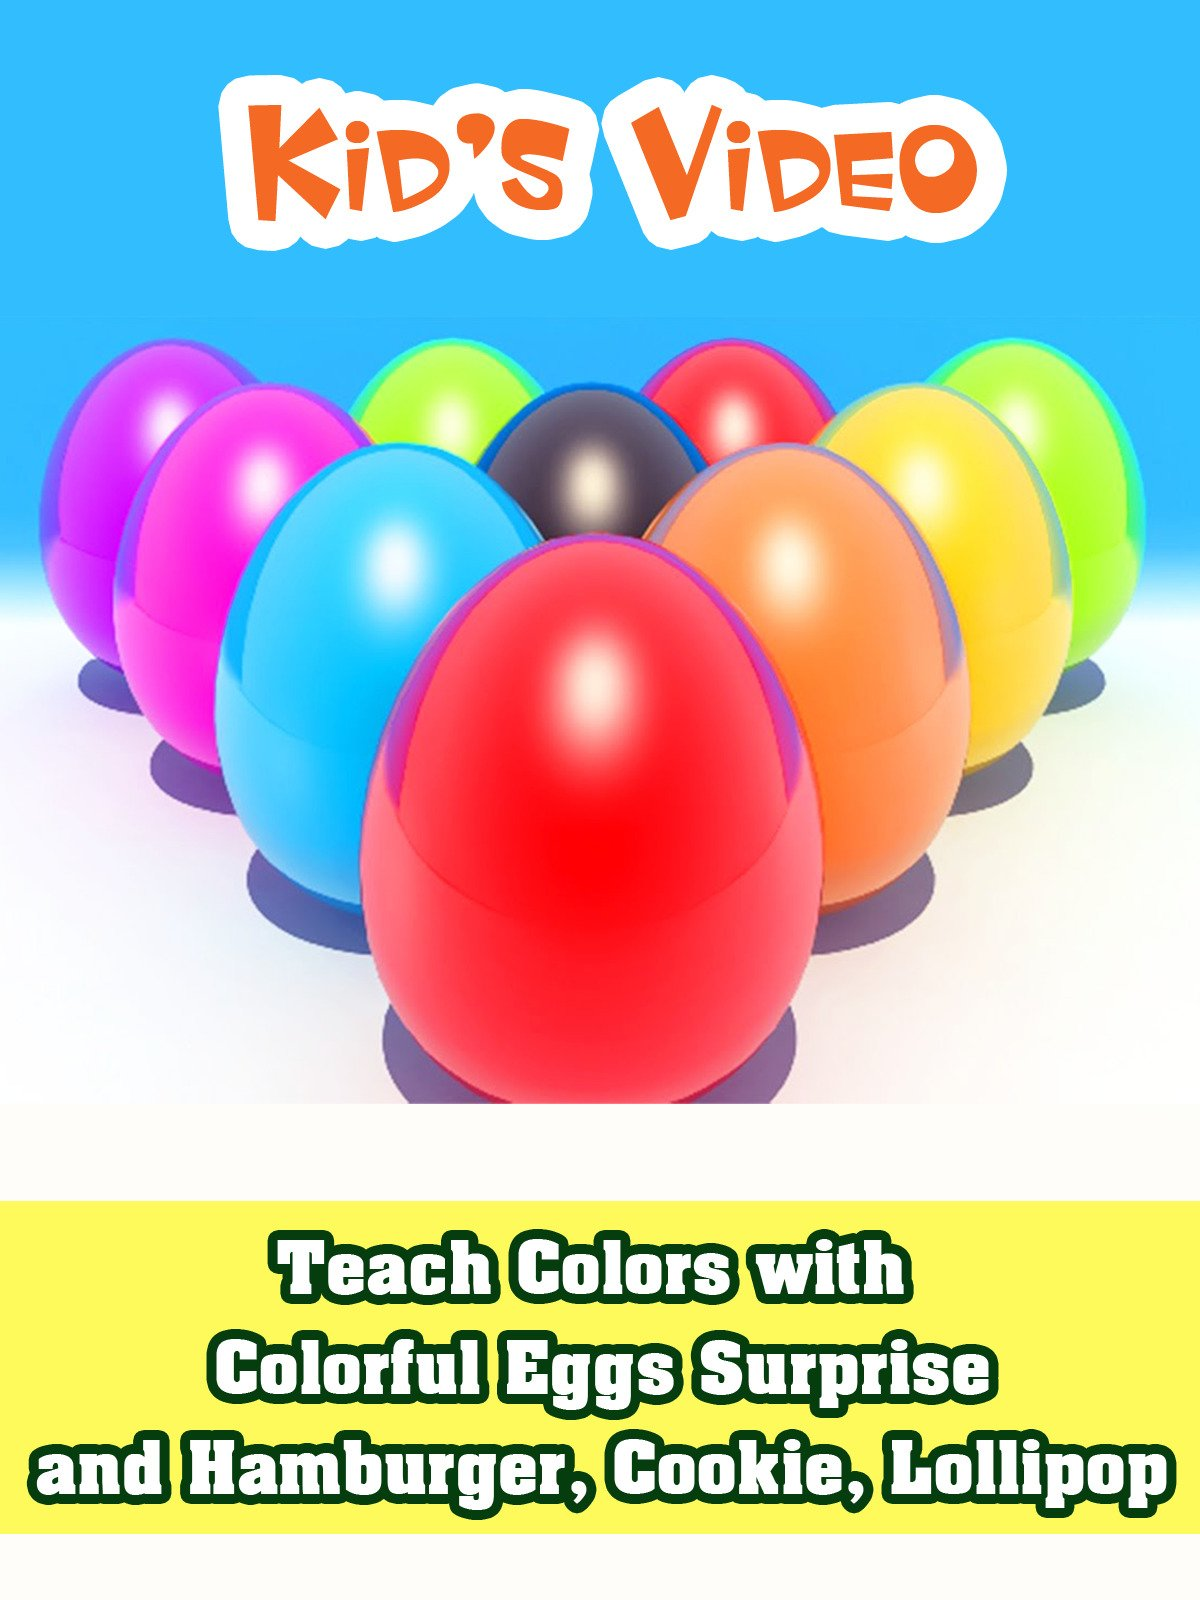 Teach Colors with Colorful Eggs Surprise and Hamburger, Cookie, Lollipop